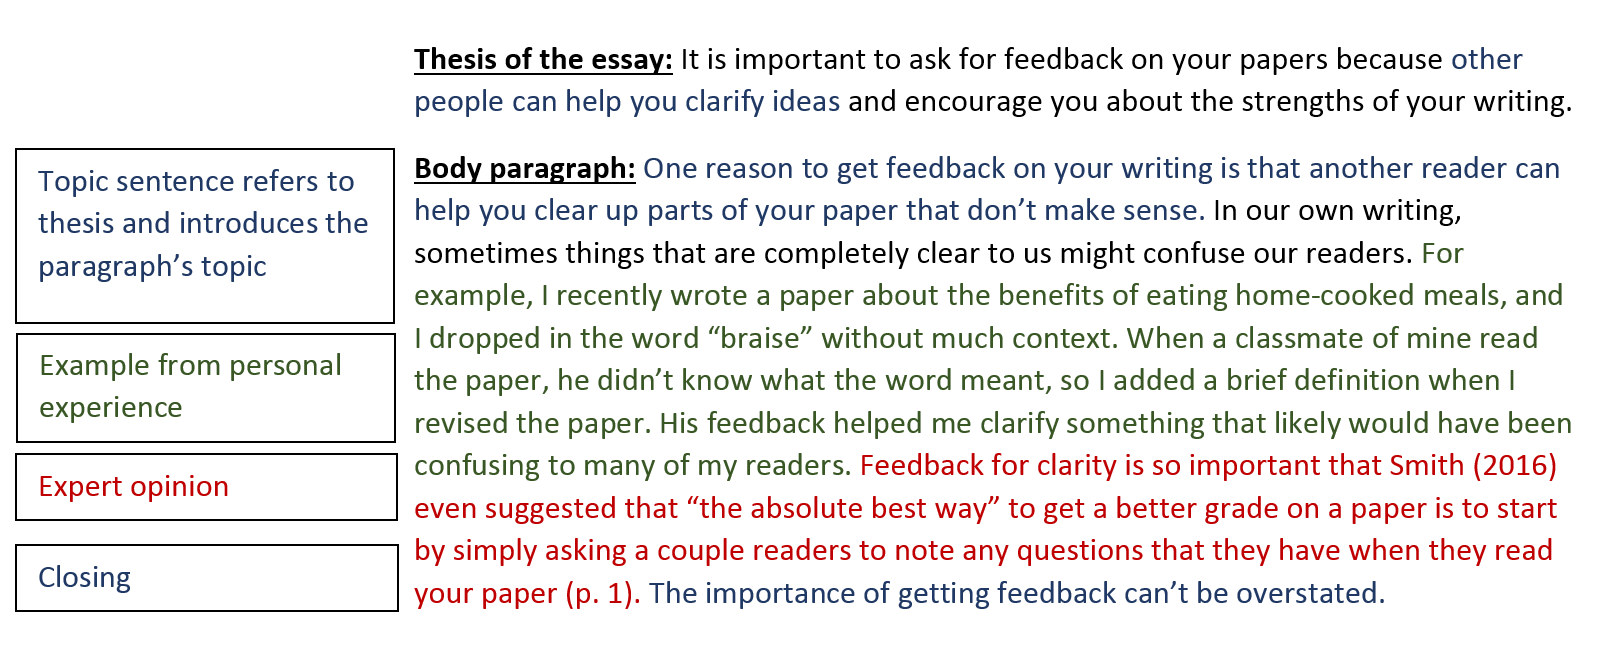 010 Essay Example Body Paragraph Sample Impressive Argumentative Sentence Starters Format First Transitions Full